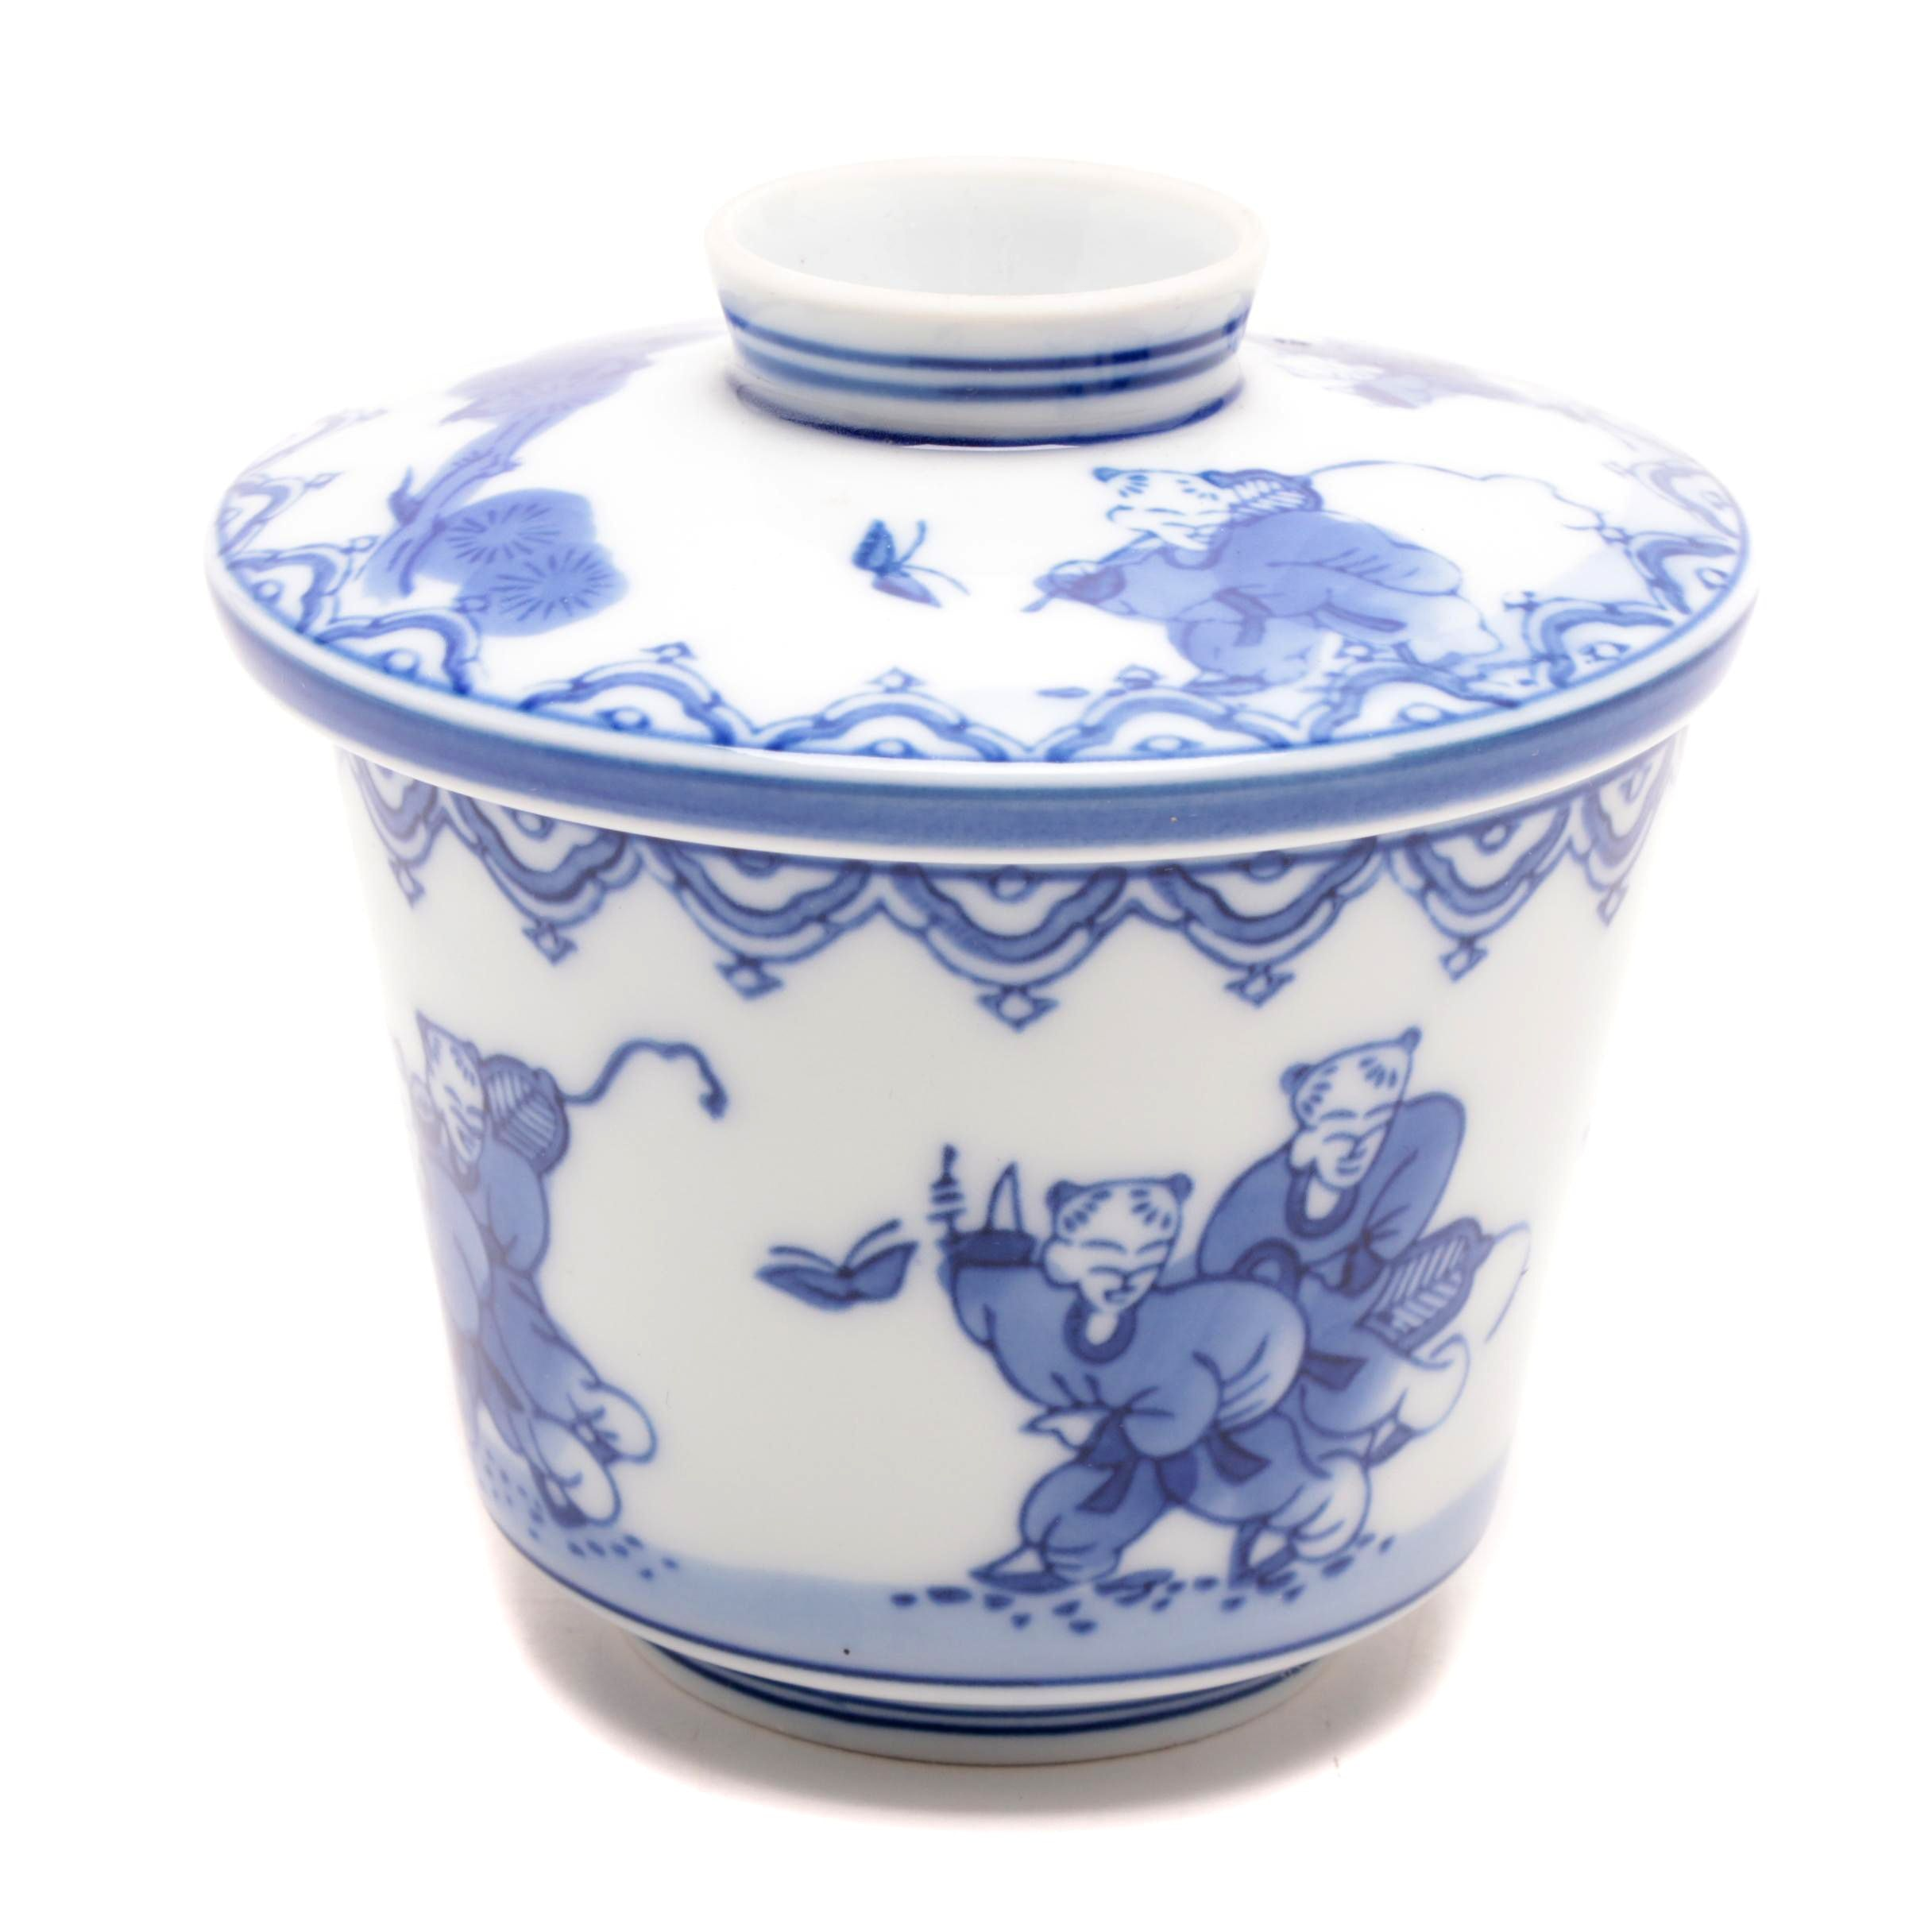 Japanese Nabeshima Blue and White Porcelain Lidded Container